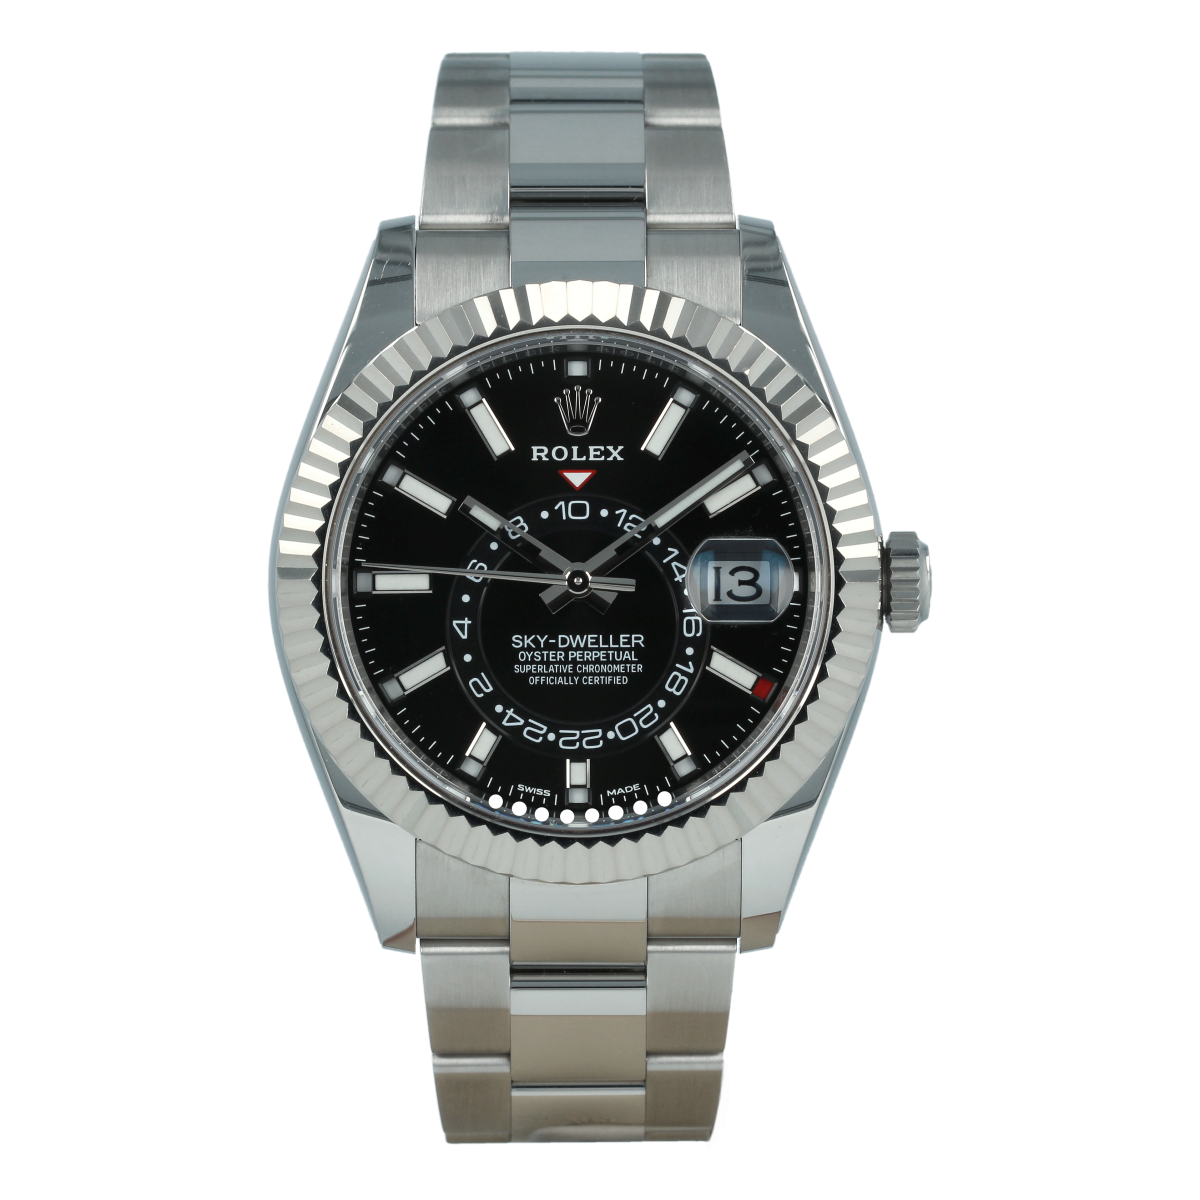 Rolex Sky-Dweller 326934 Black Dial | Buy pre-owned Rolex watch